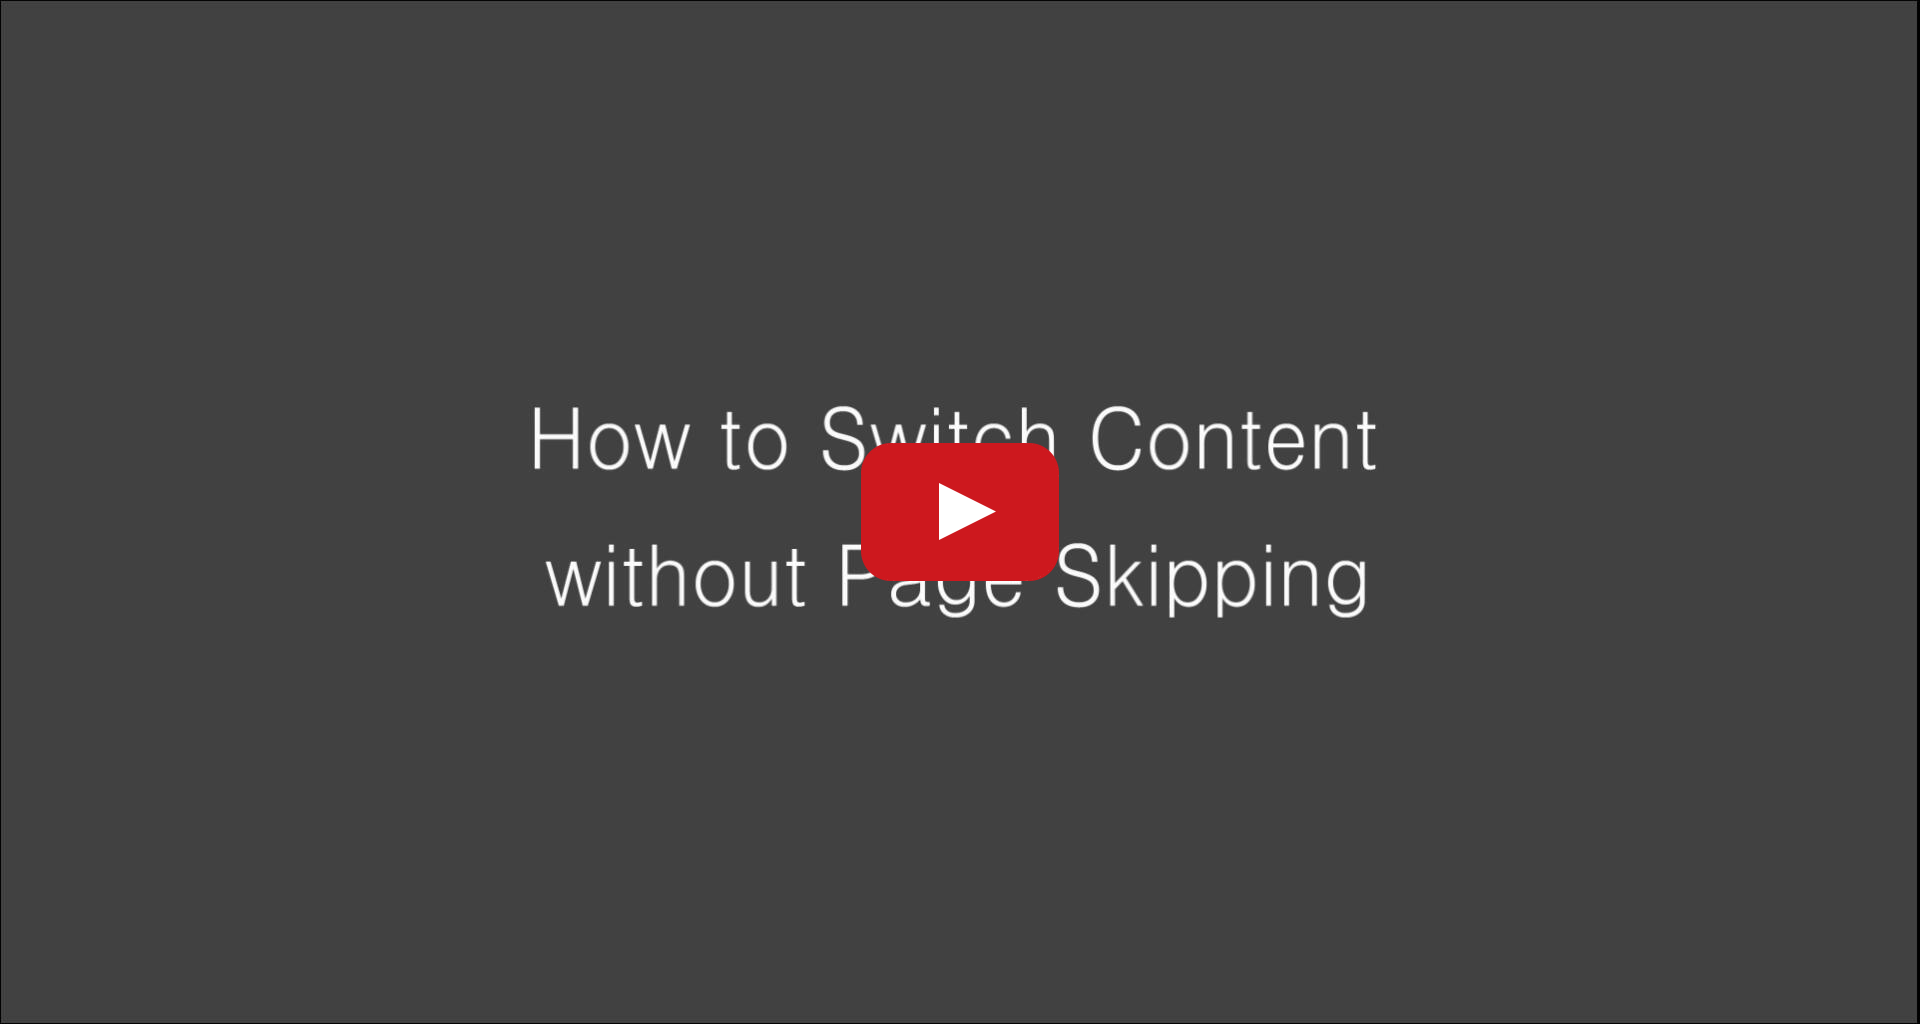 Mockplus Prototyping Tutorial - Switch Content without Page Skipping